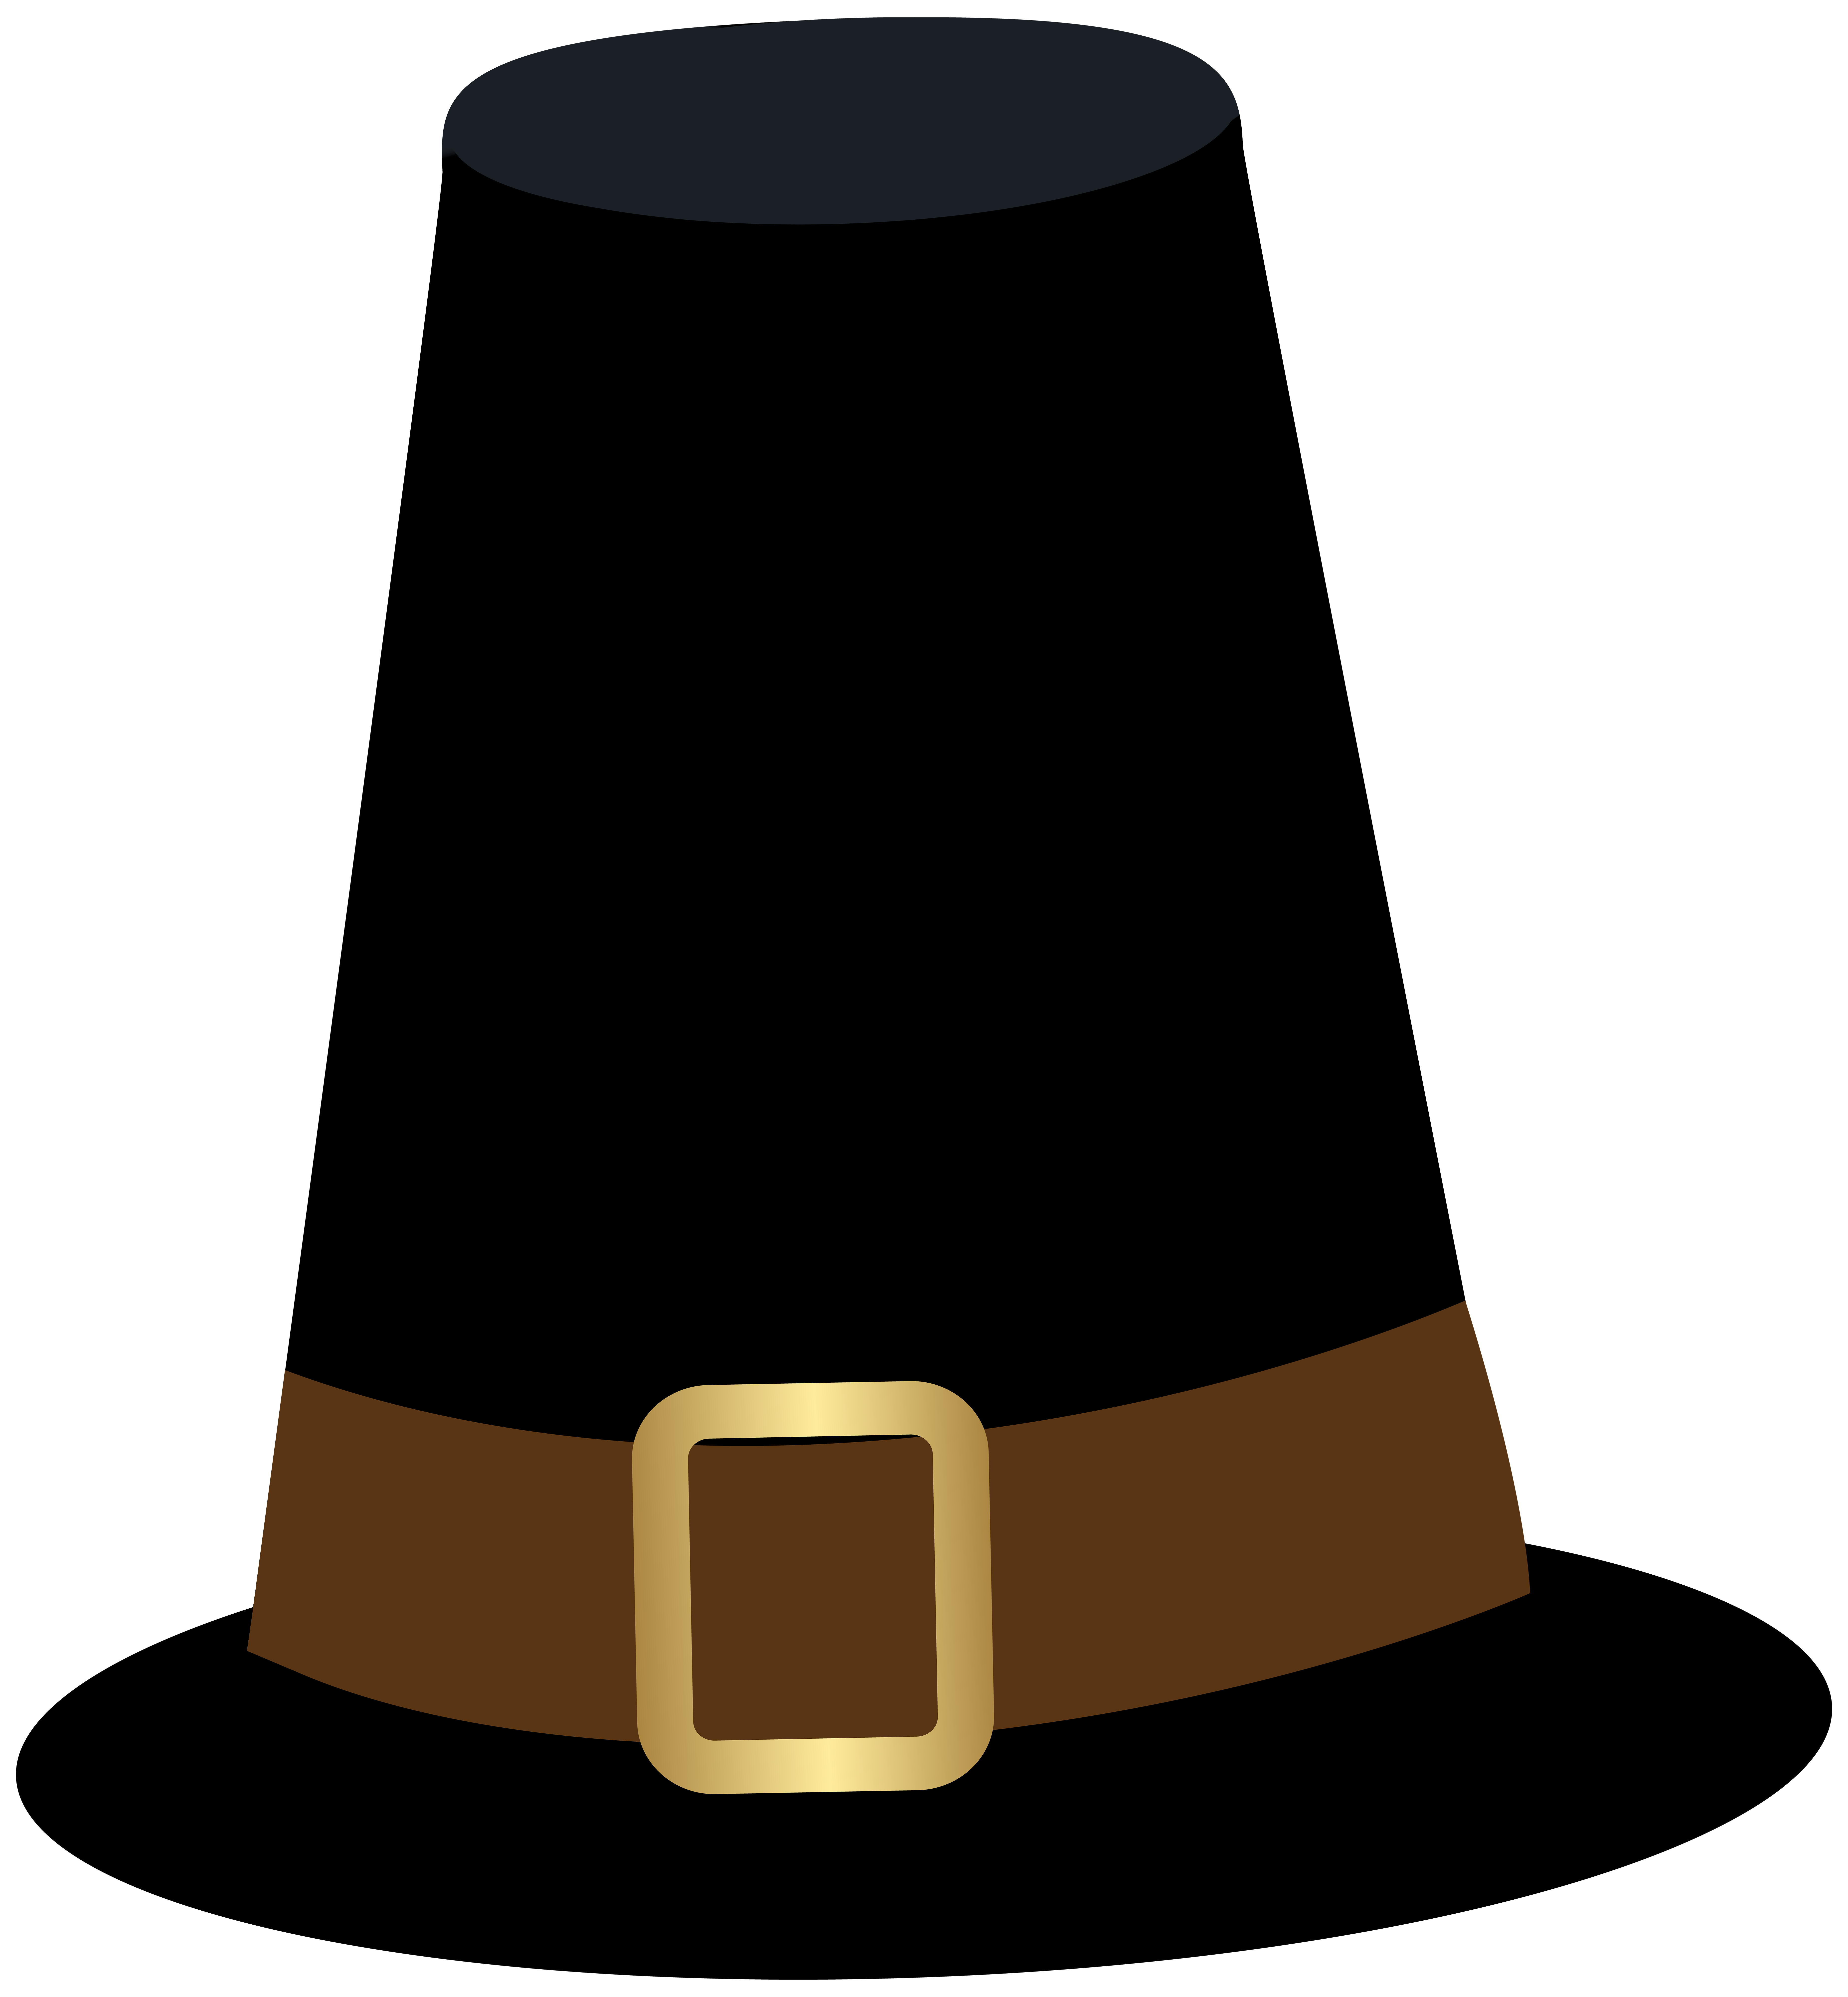 Amish download free clip art with a transparent background.